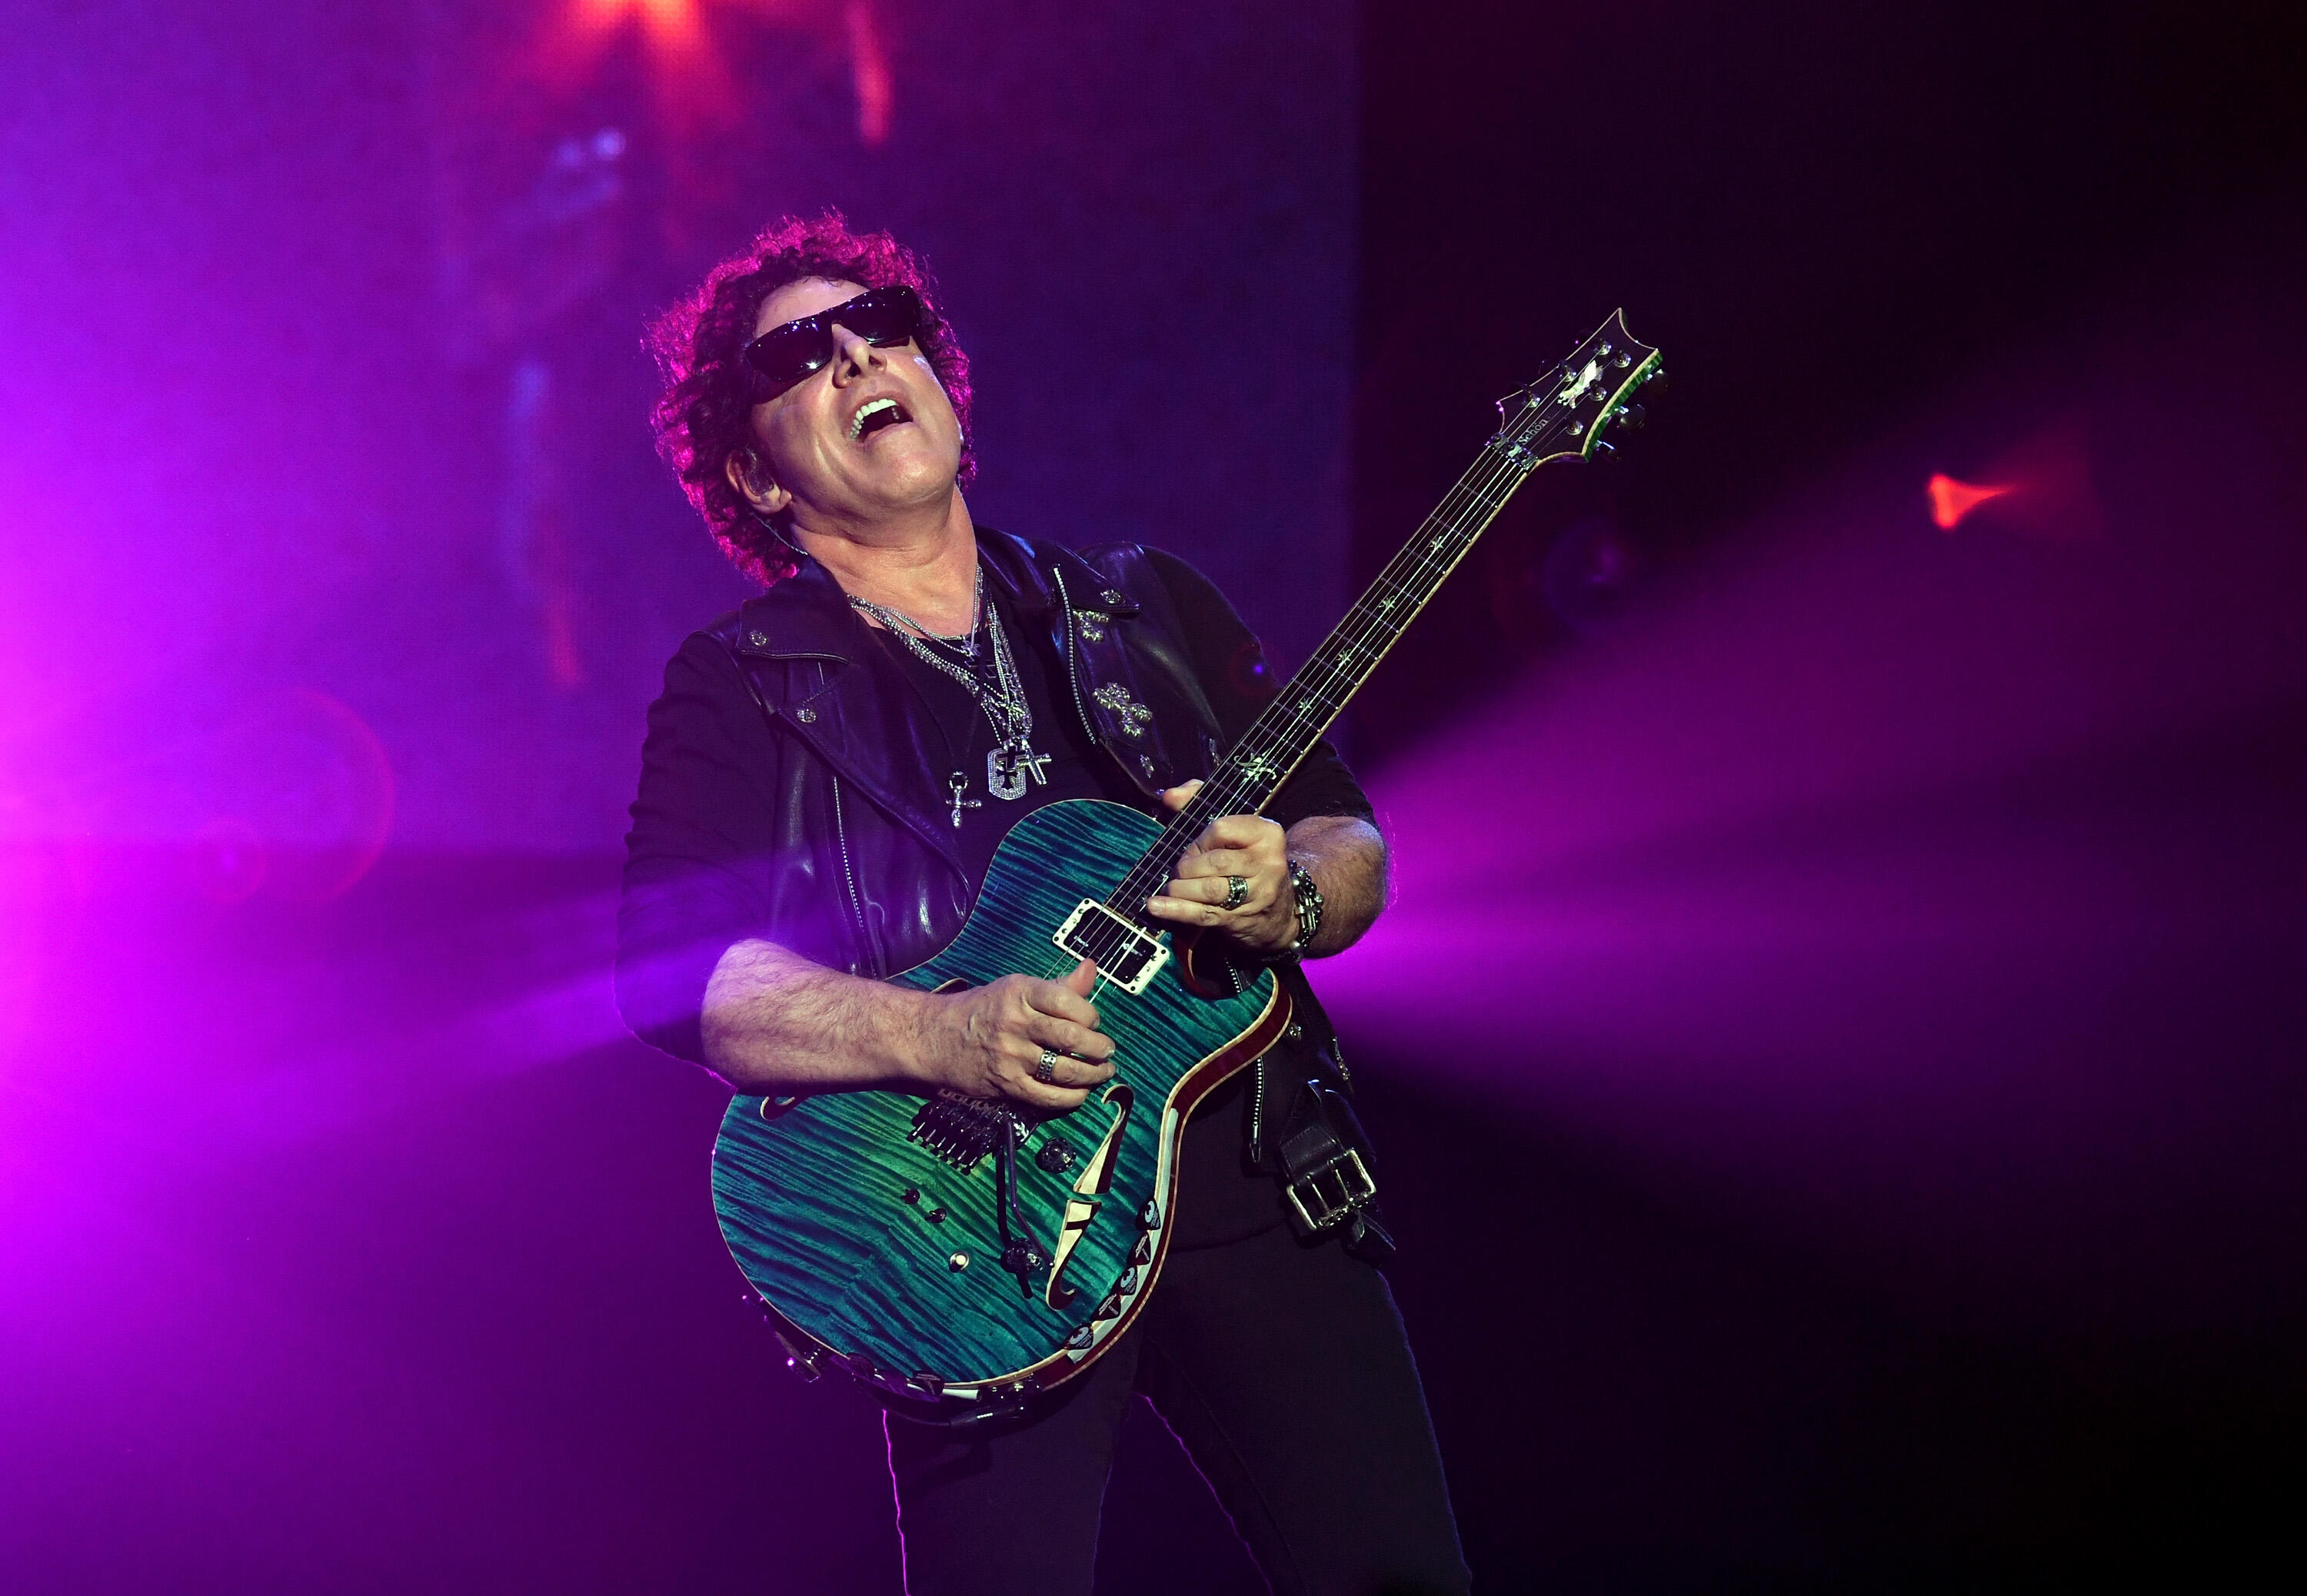 Neal Schon Feared For His Life When He Had Double Pneumonia On Tour